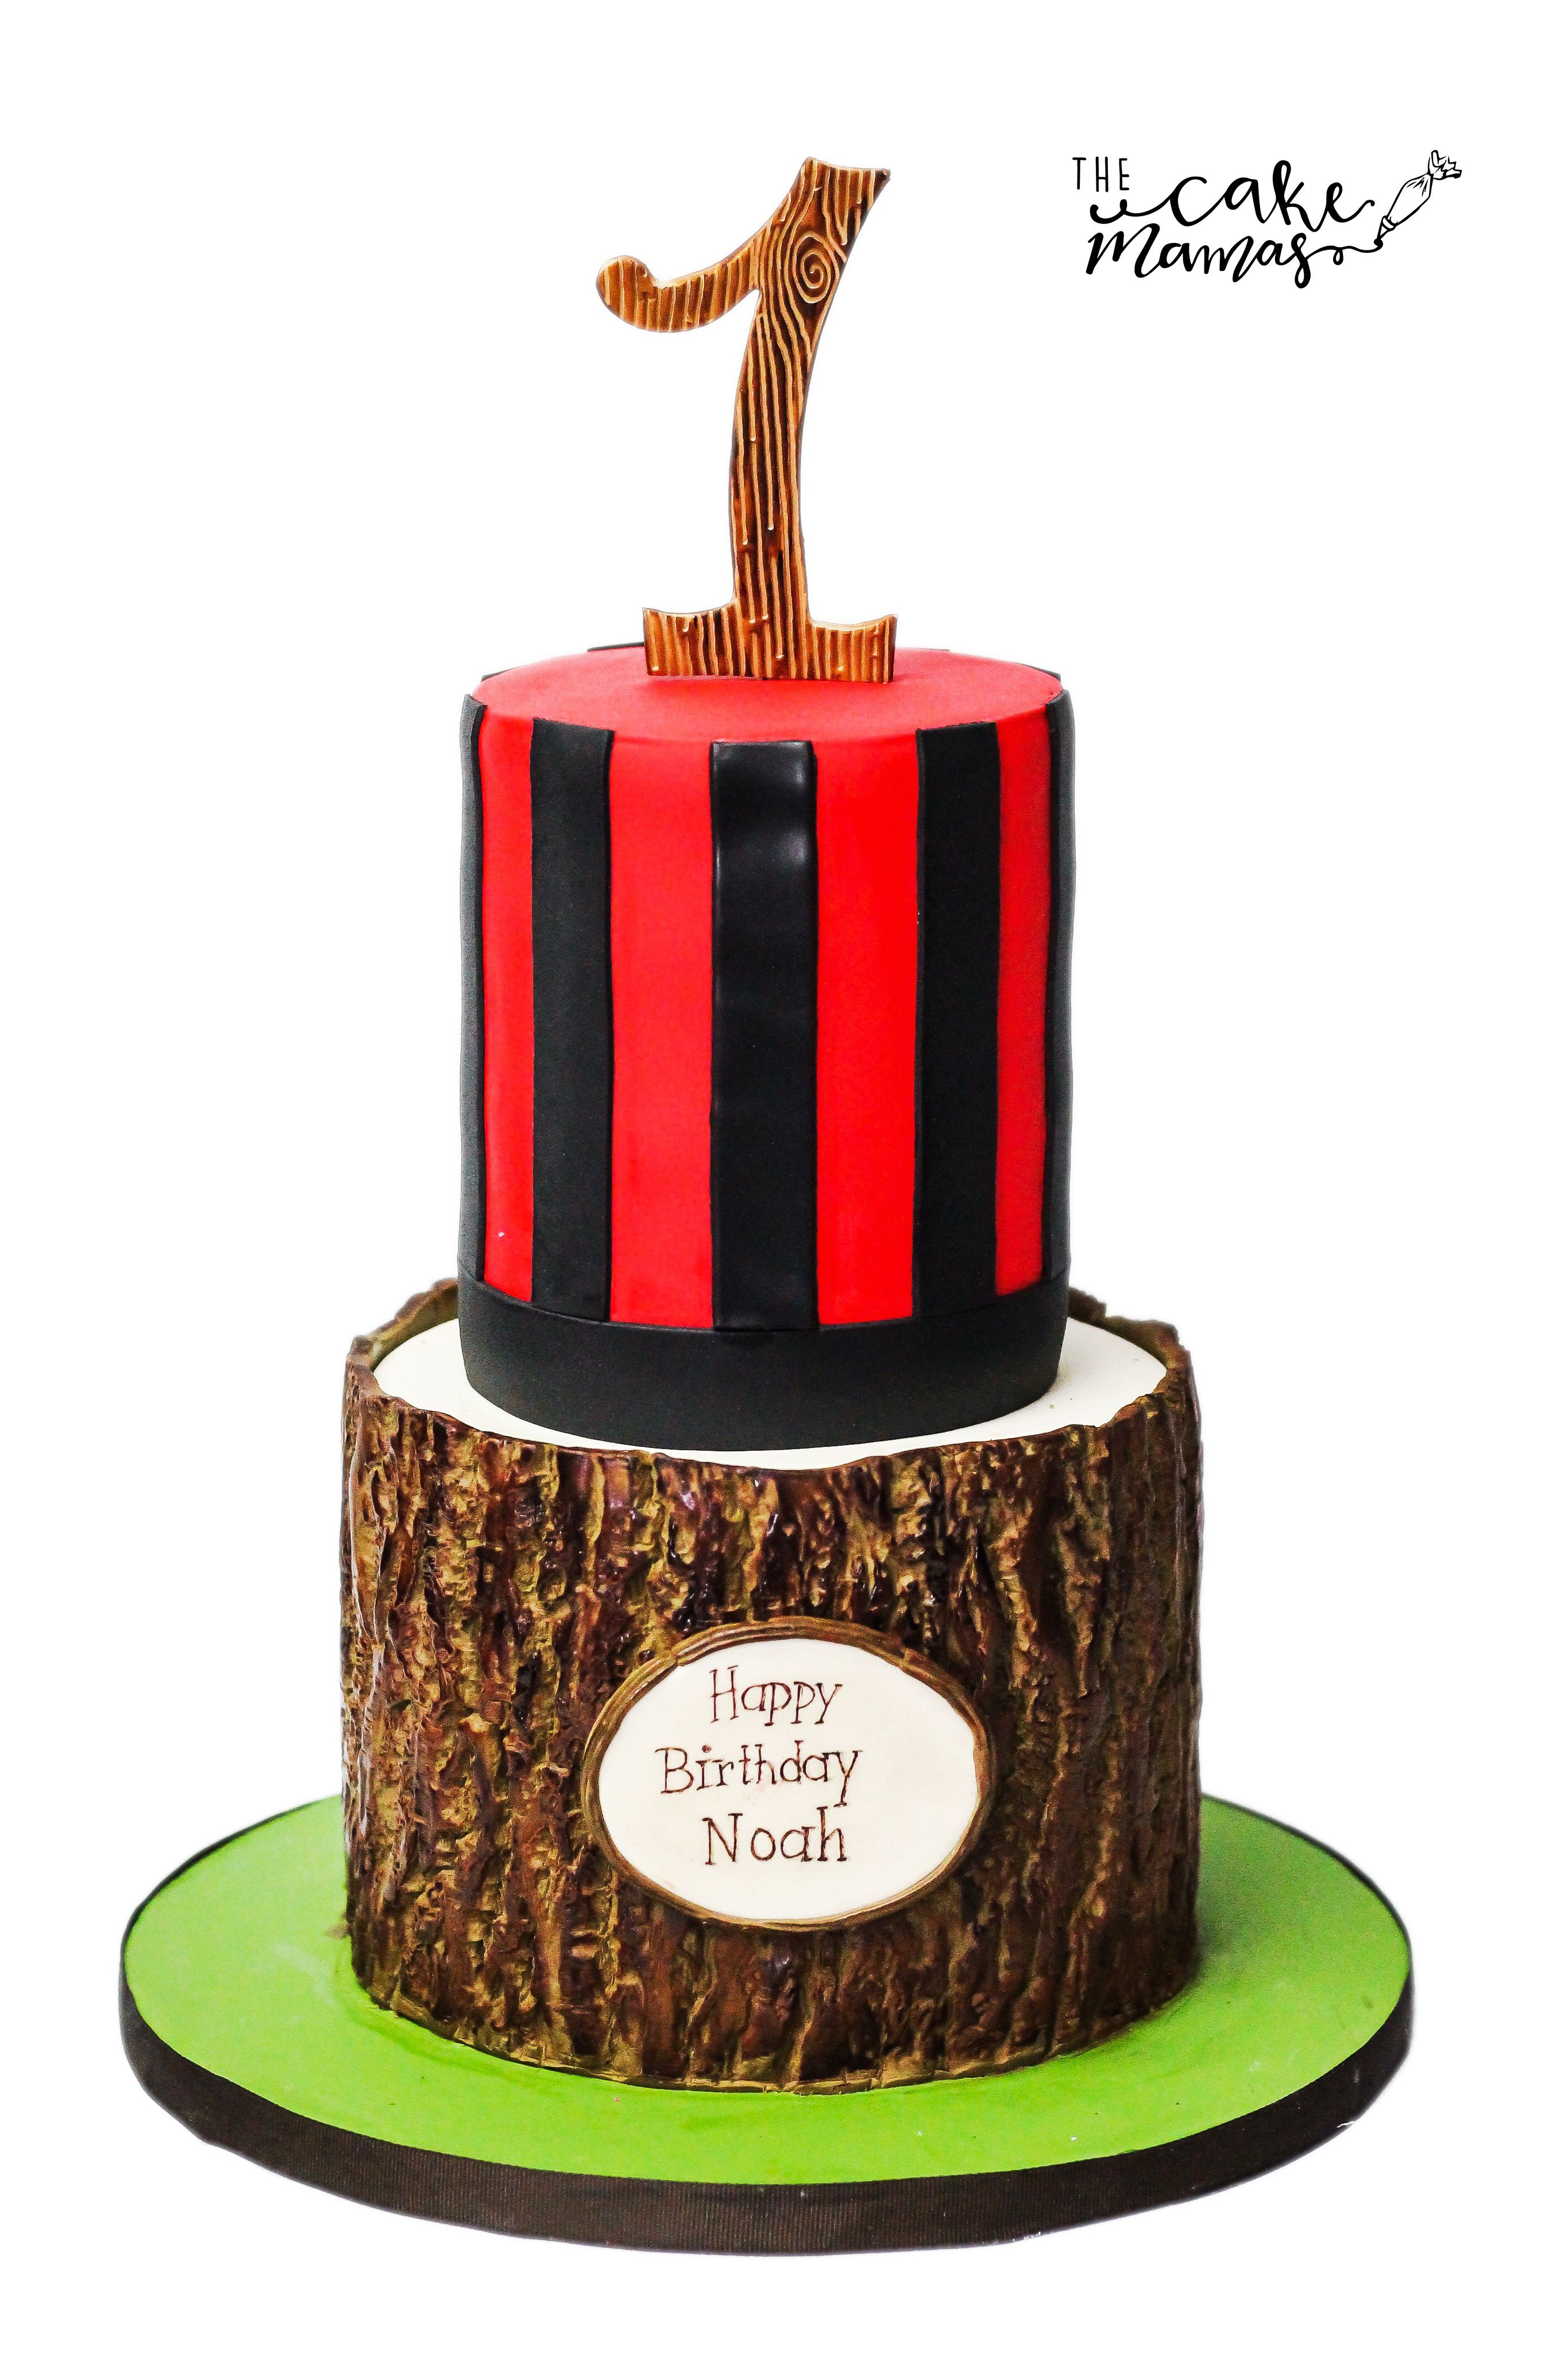 Hunting rustic themed birthday cake! Call or email to book